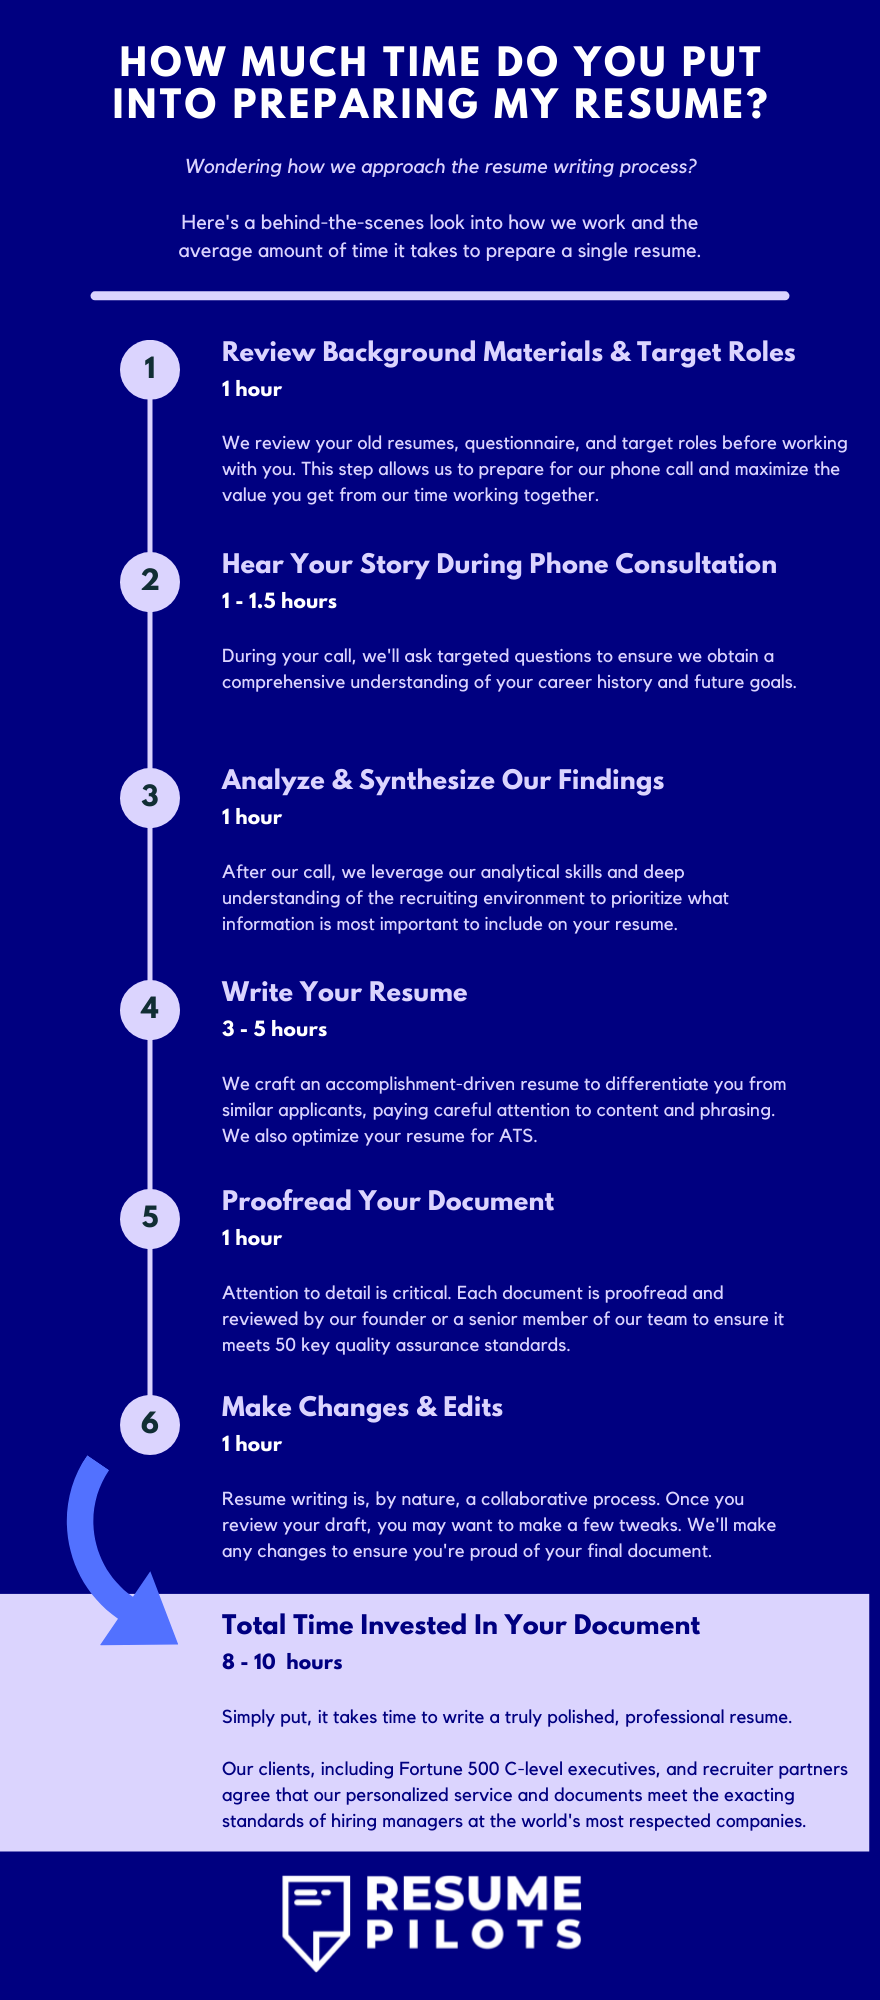 How Long Does It Take to Write a Resume?